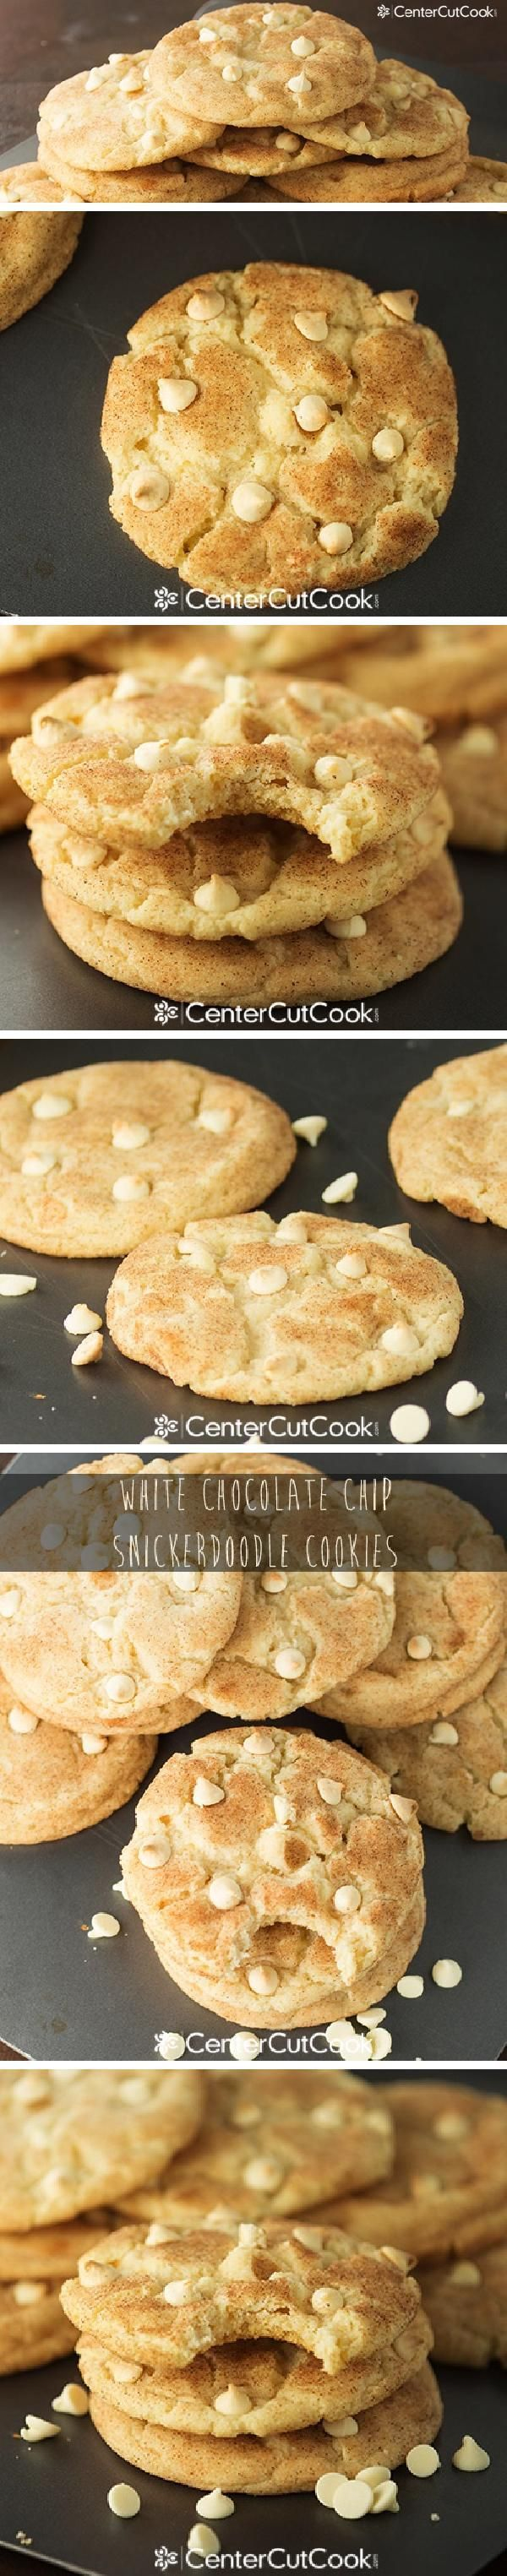 Soft,big, thick and chewy WHITE CHOCOLATE CHIP SNICKERDOODLE COOKIES!